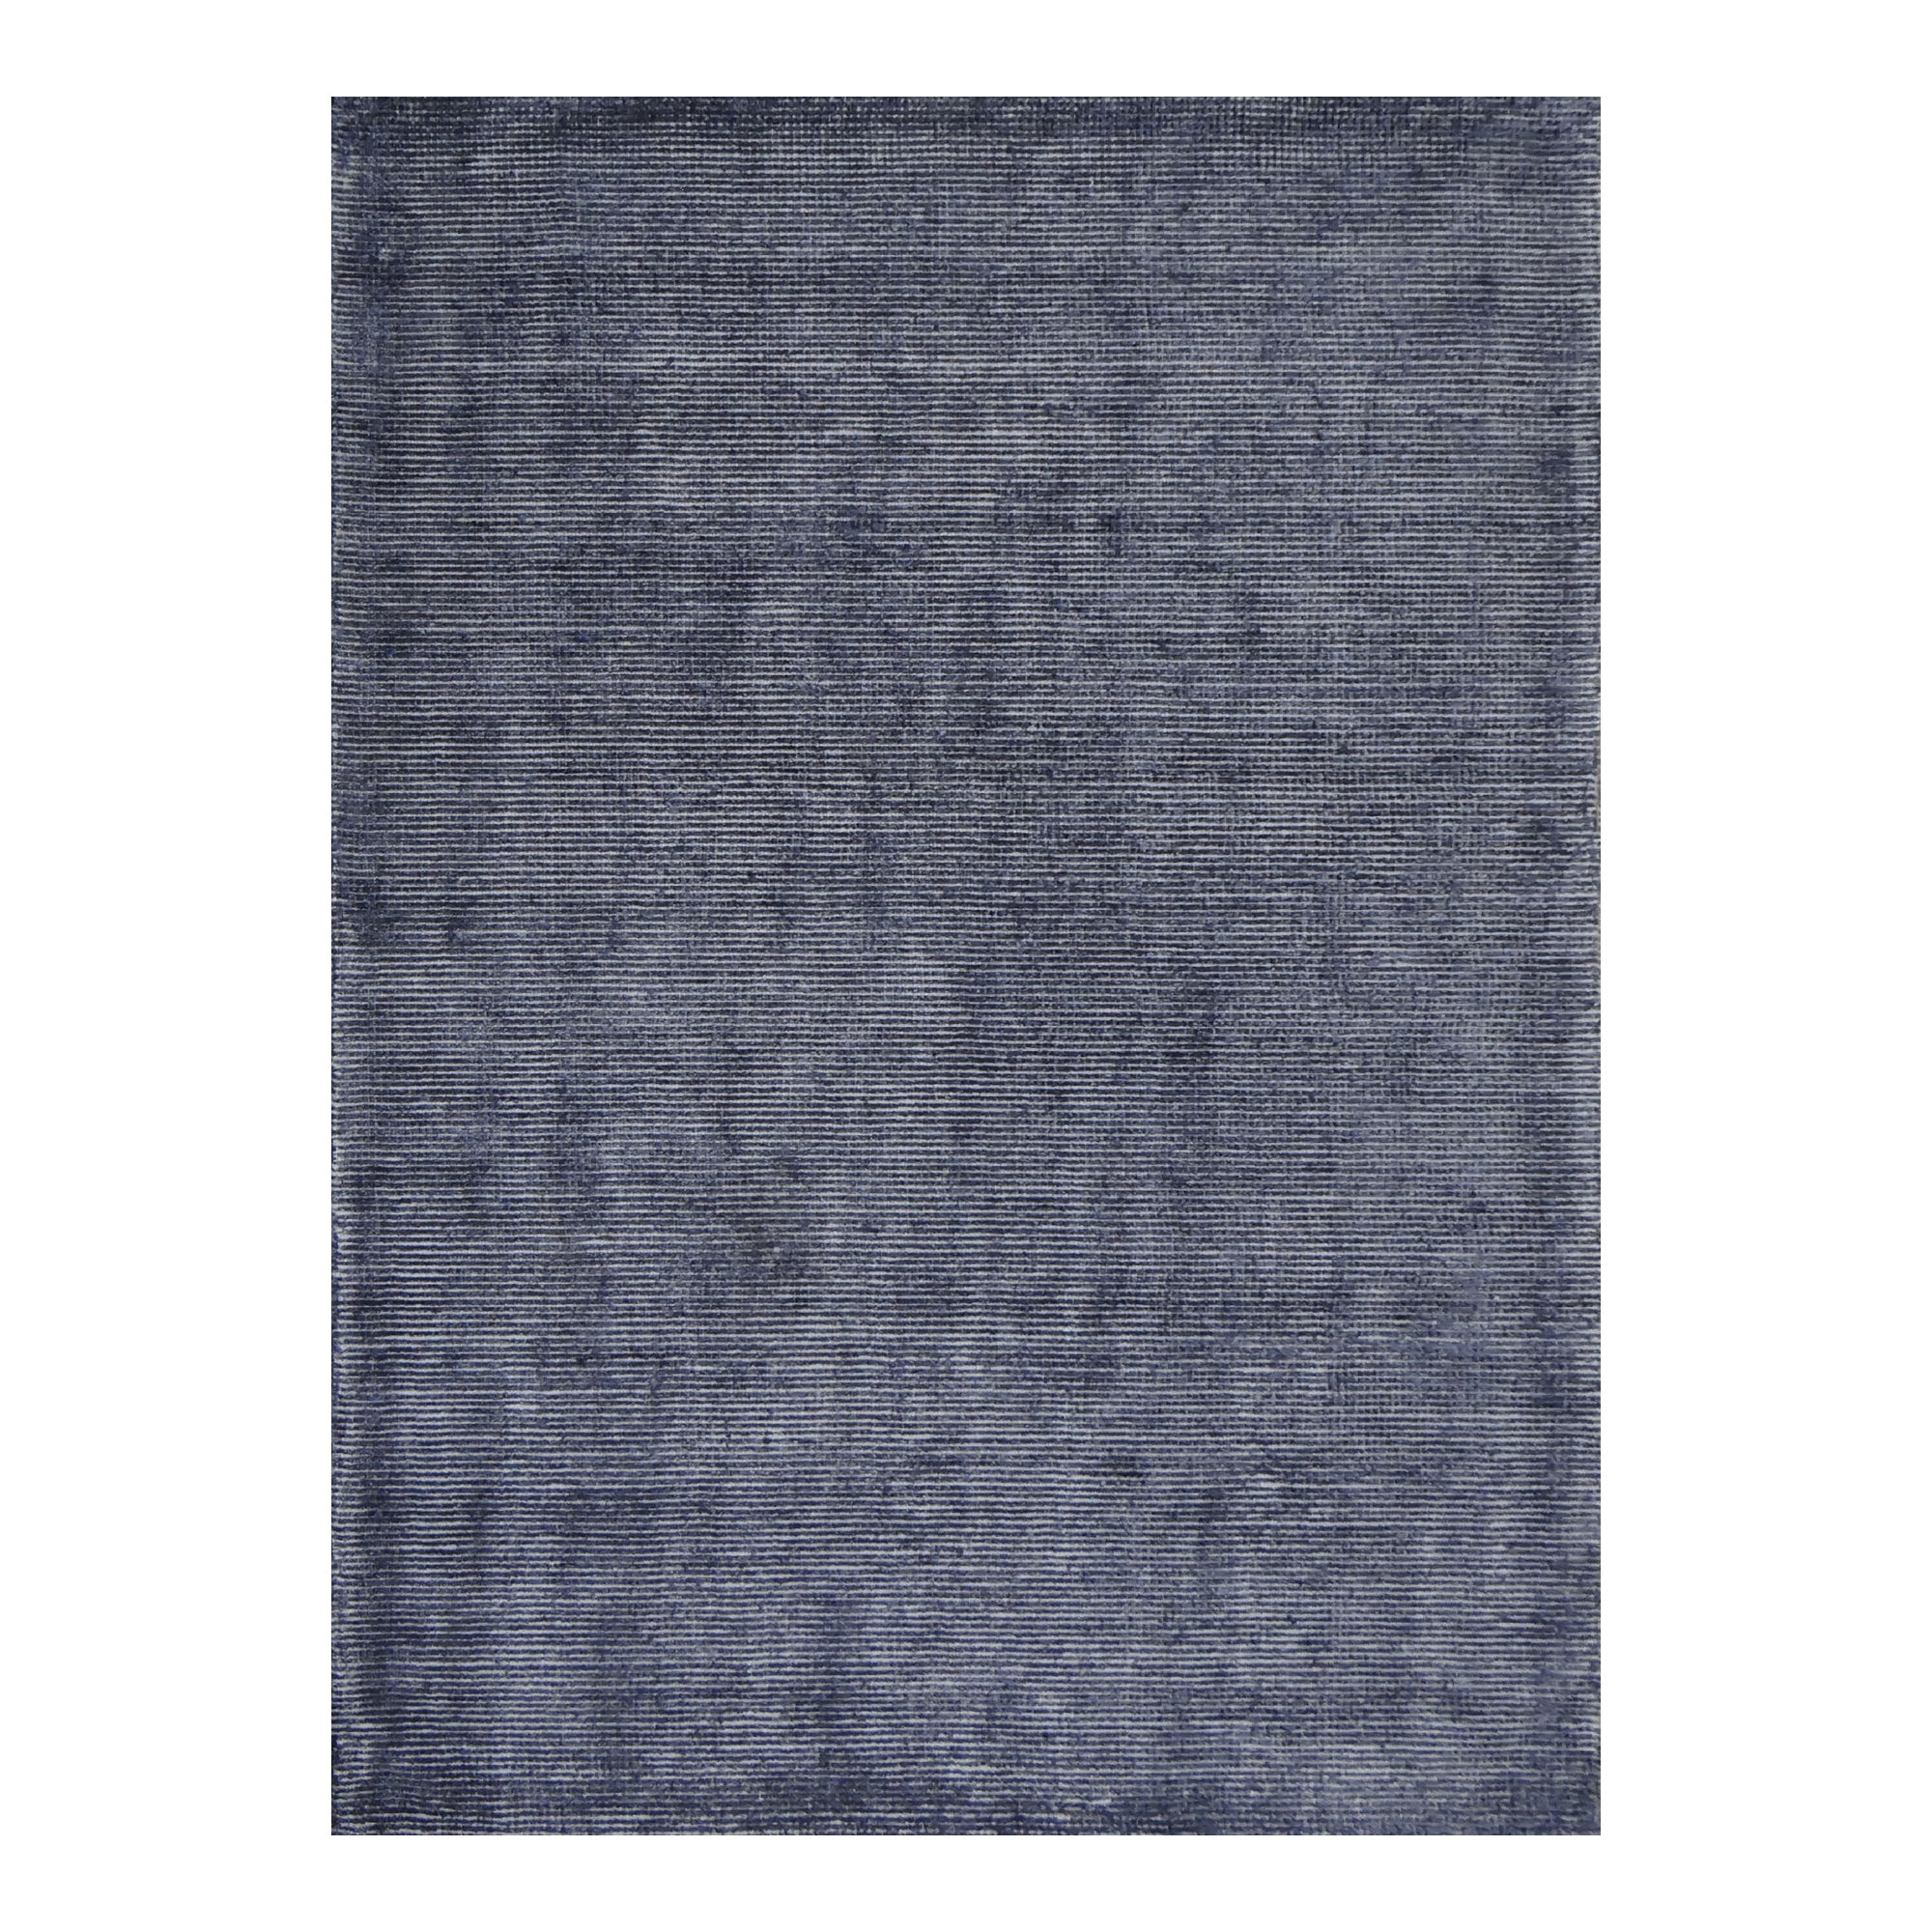 SERANO RUG 5X8, Grey - Tops-Dress